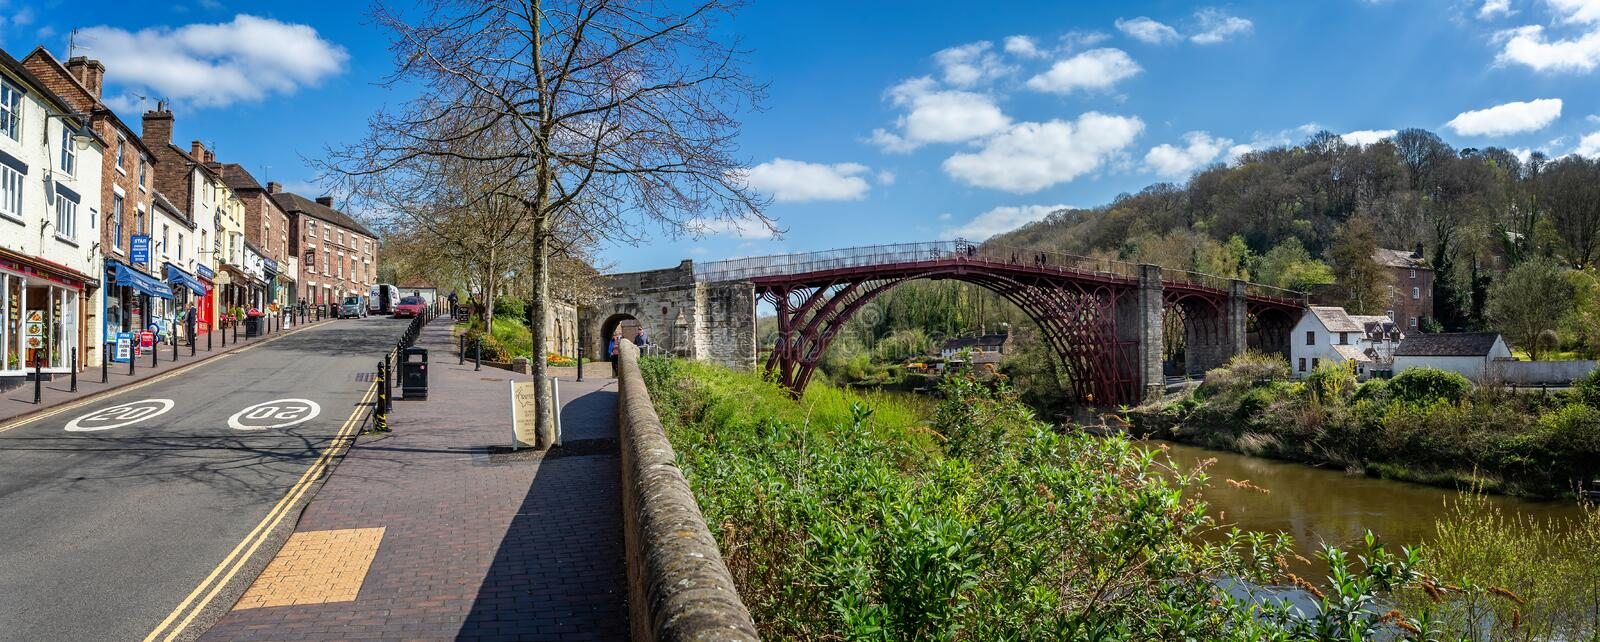 Panoramic view of Ironbridge town and the iconic Ironbridge in Shropshire, UK. On 10 April 2019 stock photography